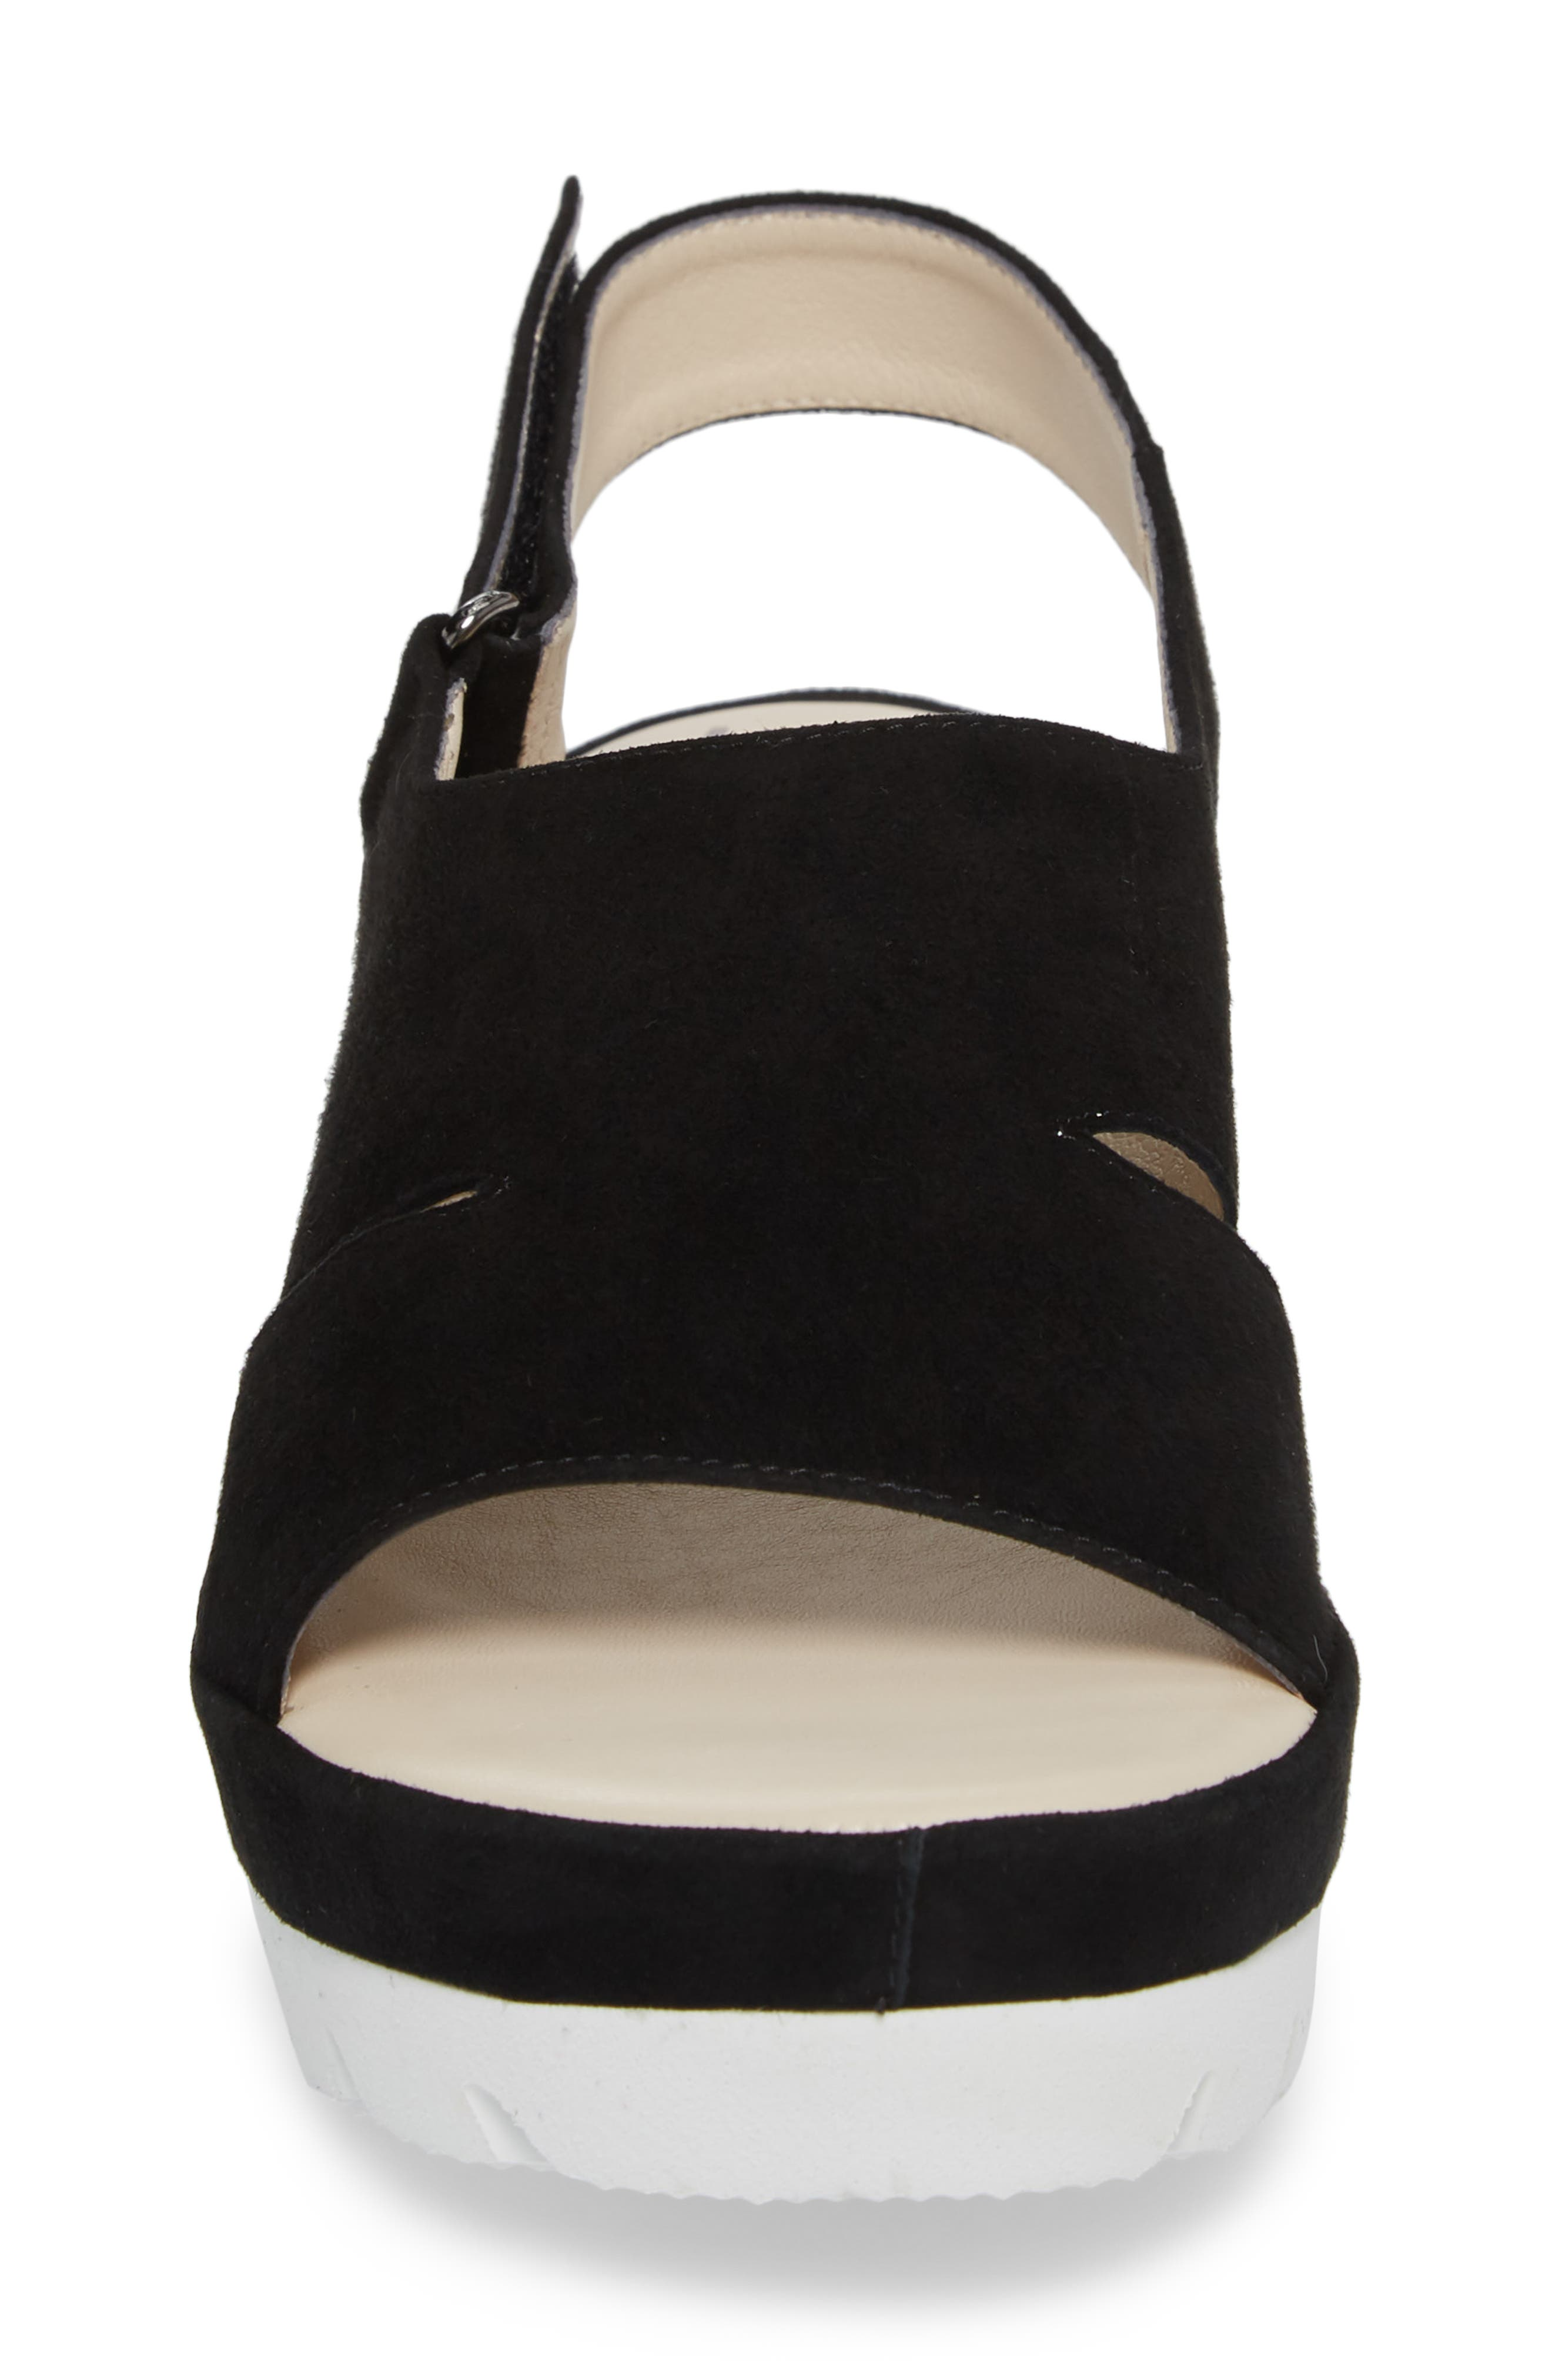 Bergamotto Slingback Wedge Sandal,                             Alternate thumbnail 4, color,                             BLACK SUEDE